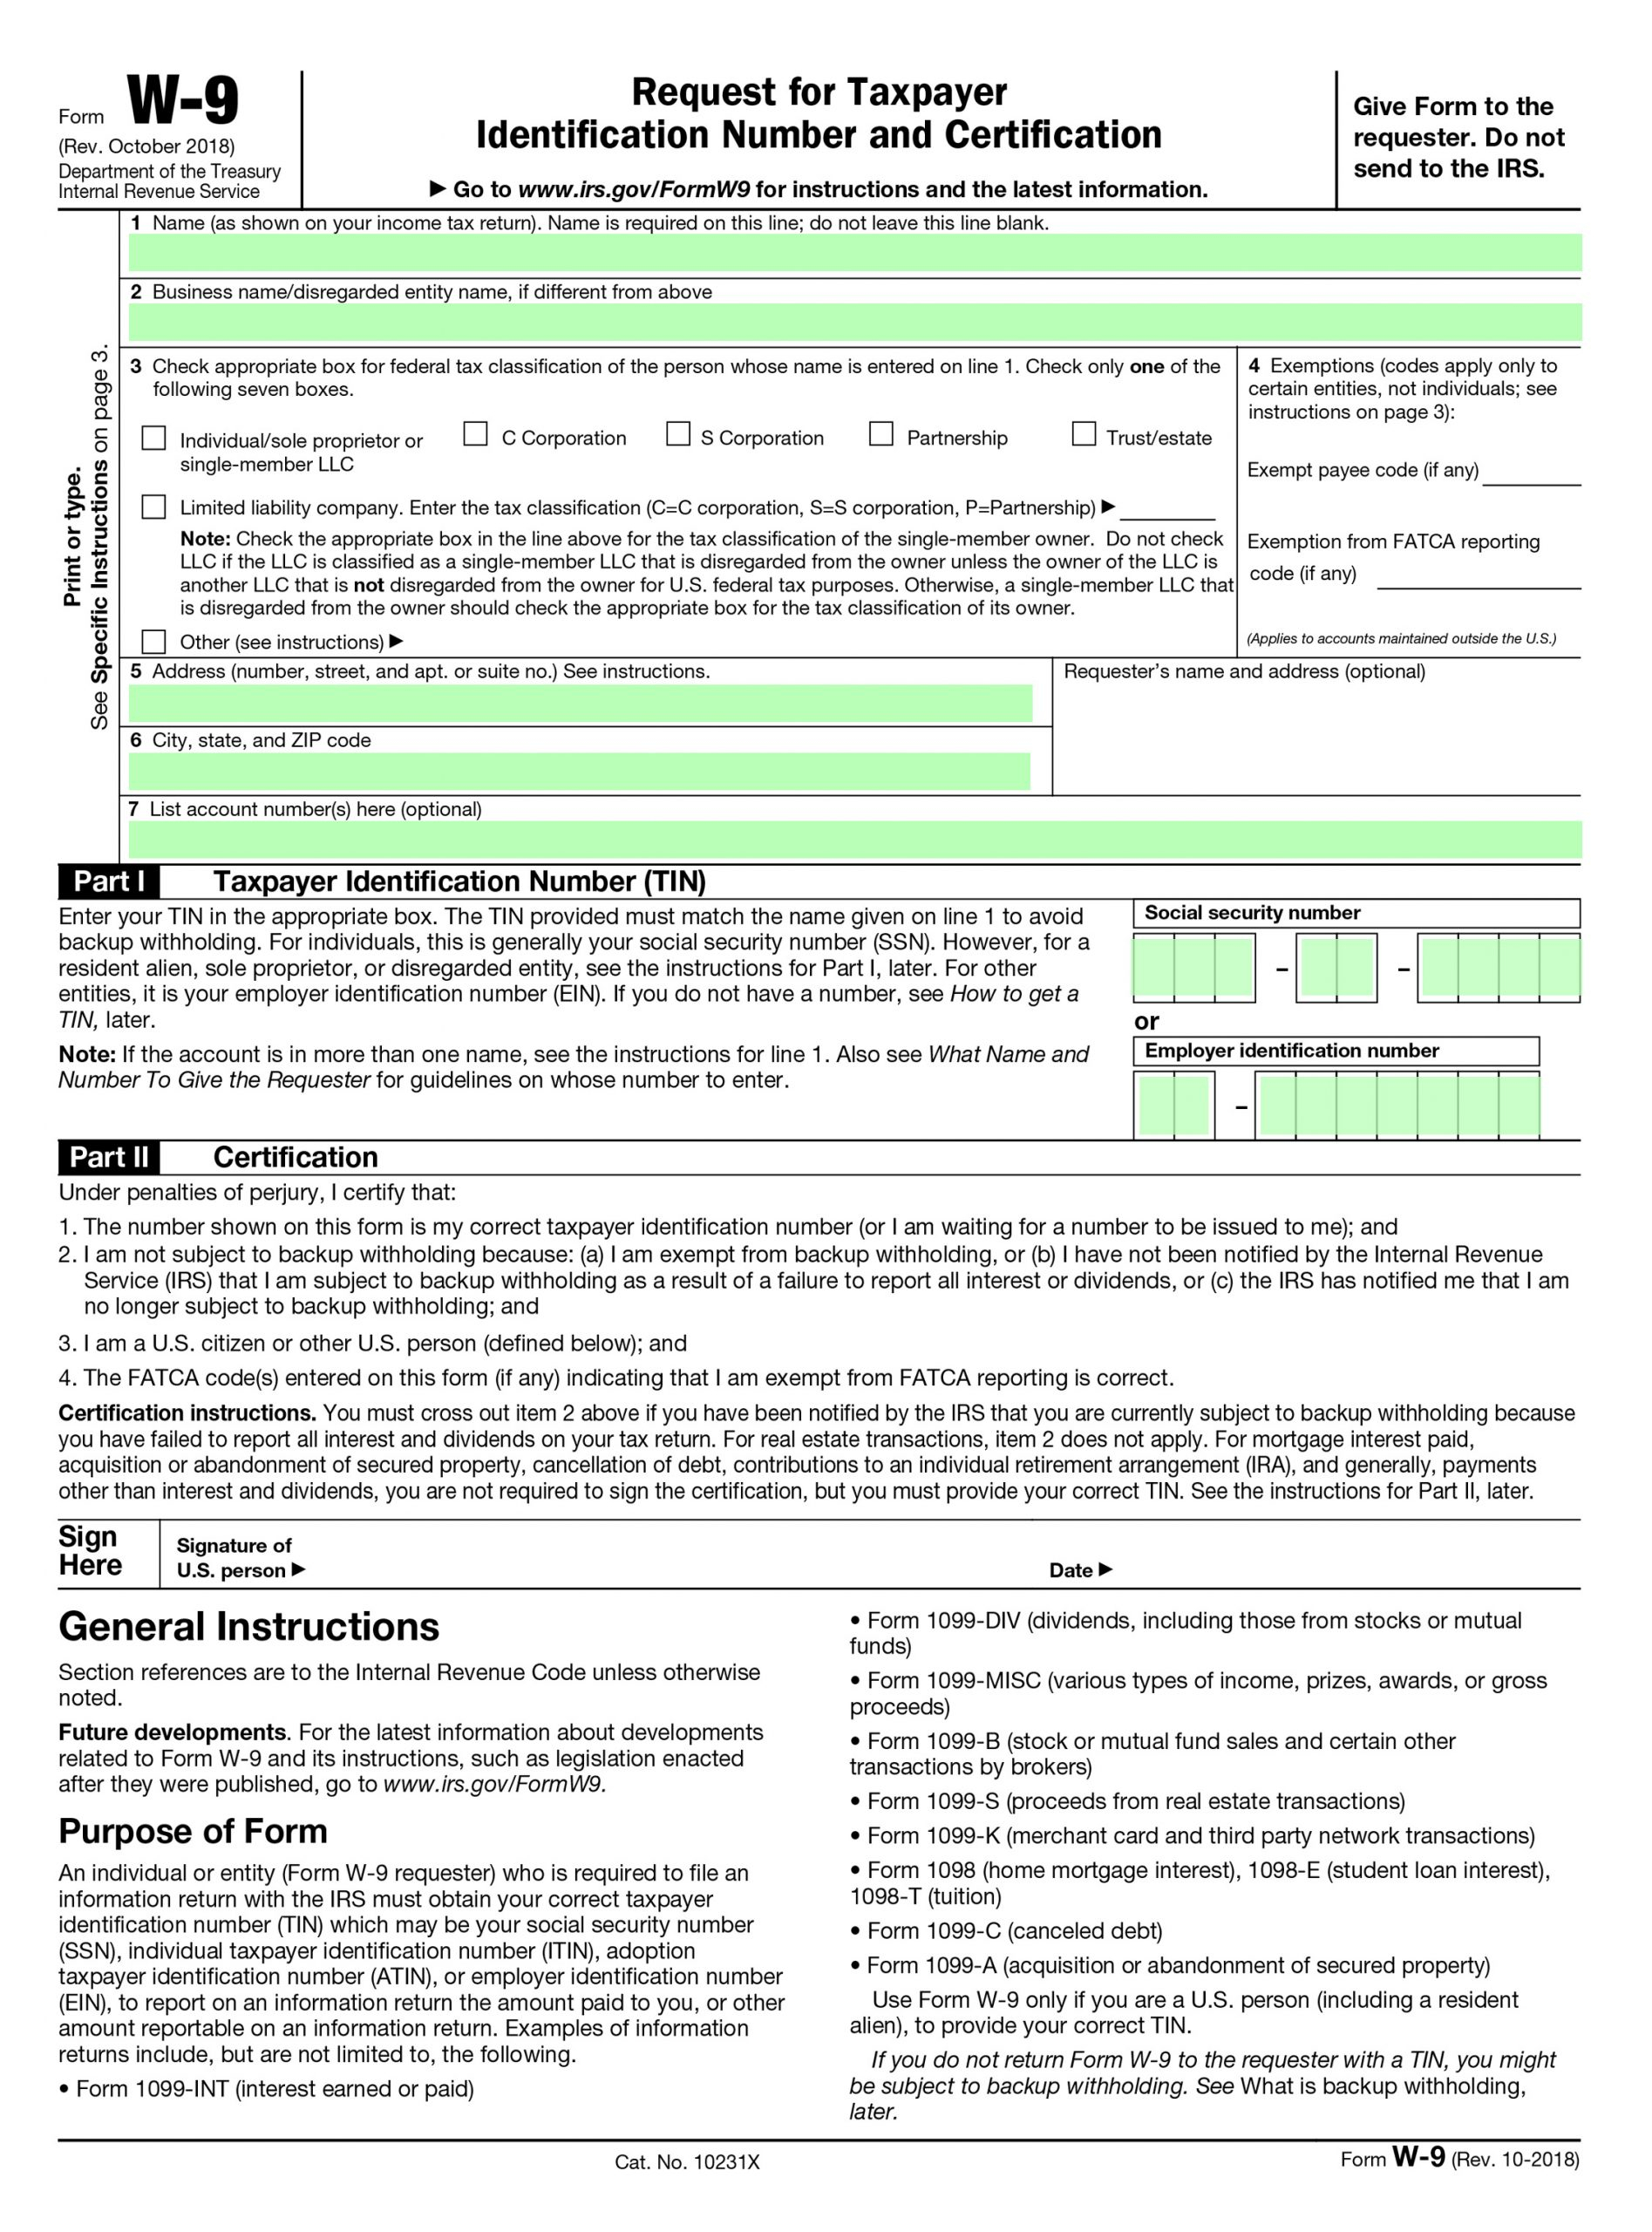 Filling Irs Form W-9 - Editable, Printable Blank | Fill Out